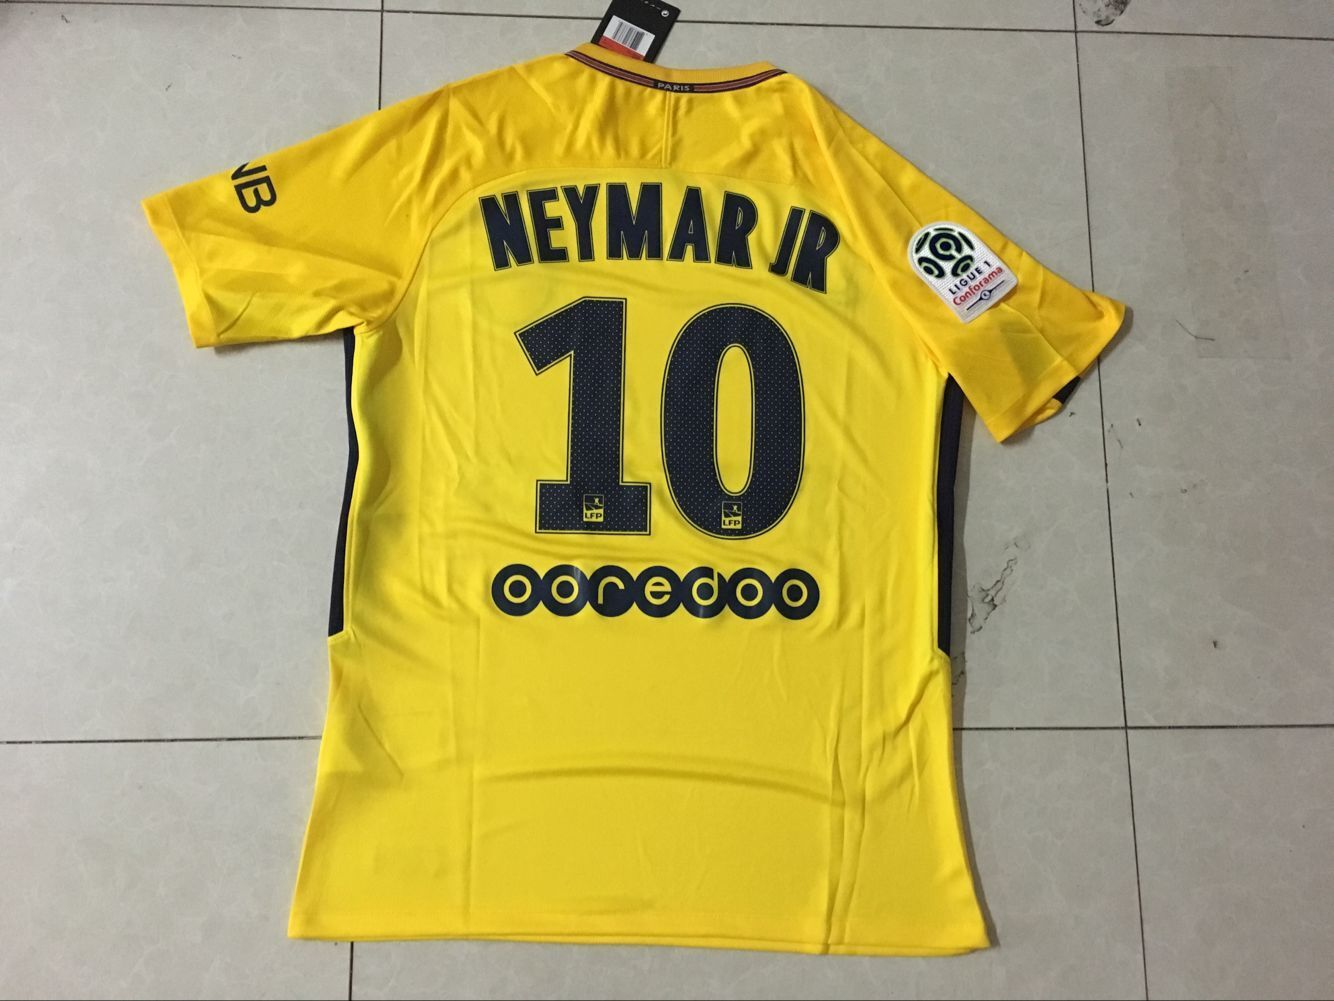 Size S-XXXXL Customized any name and number. Find this Pin and more on 17 18  PSG Neymar JR soccer jerseys ... d2a46b1ff